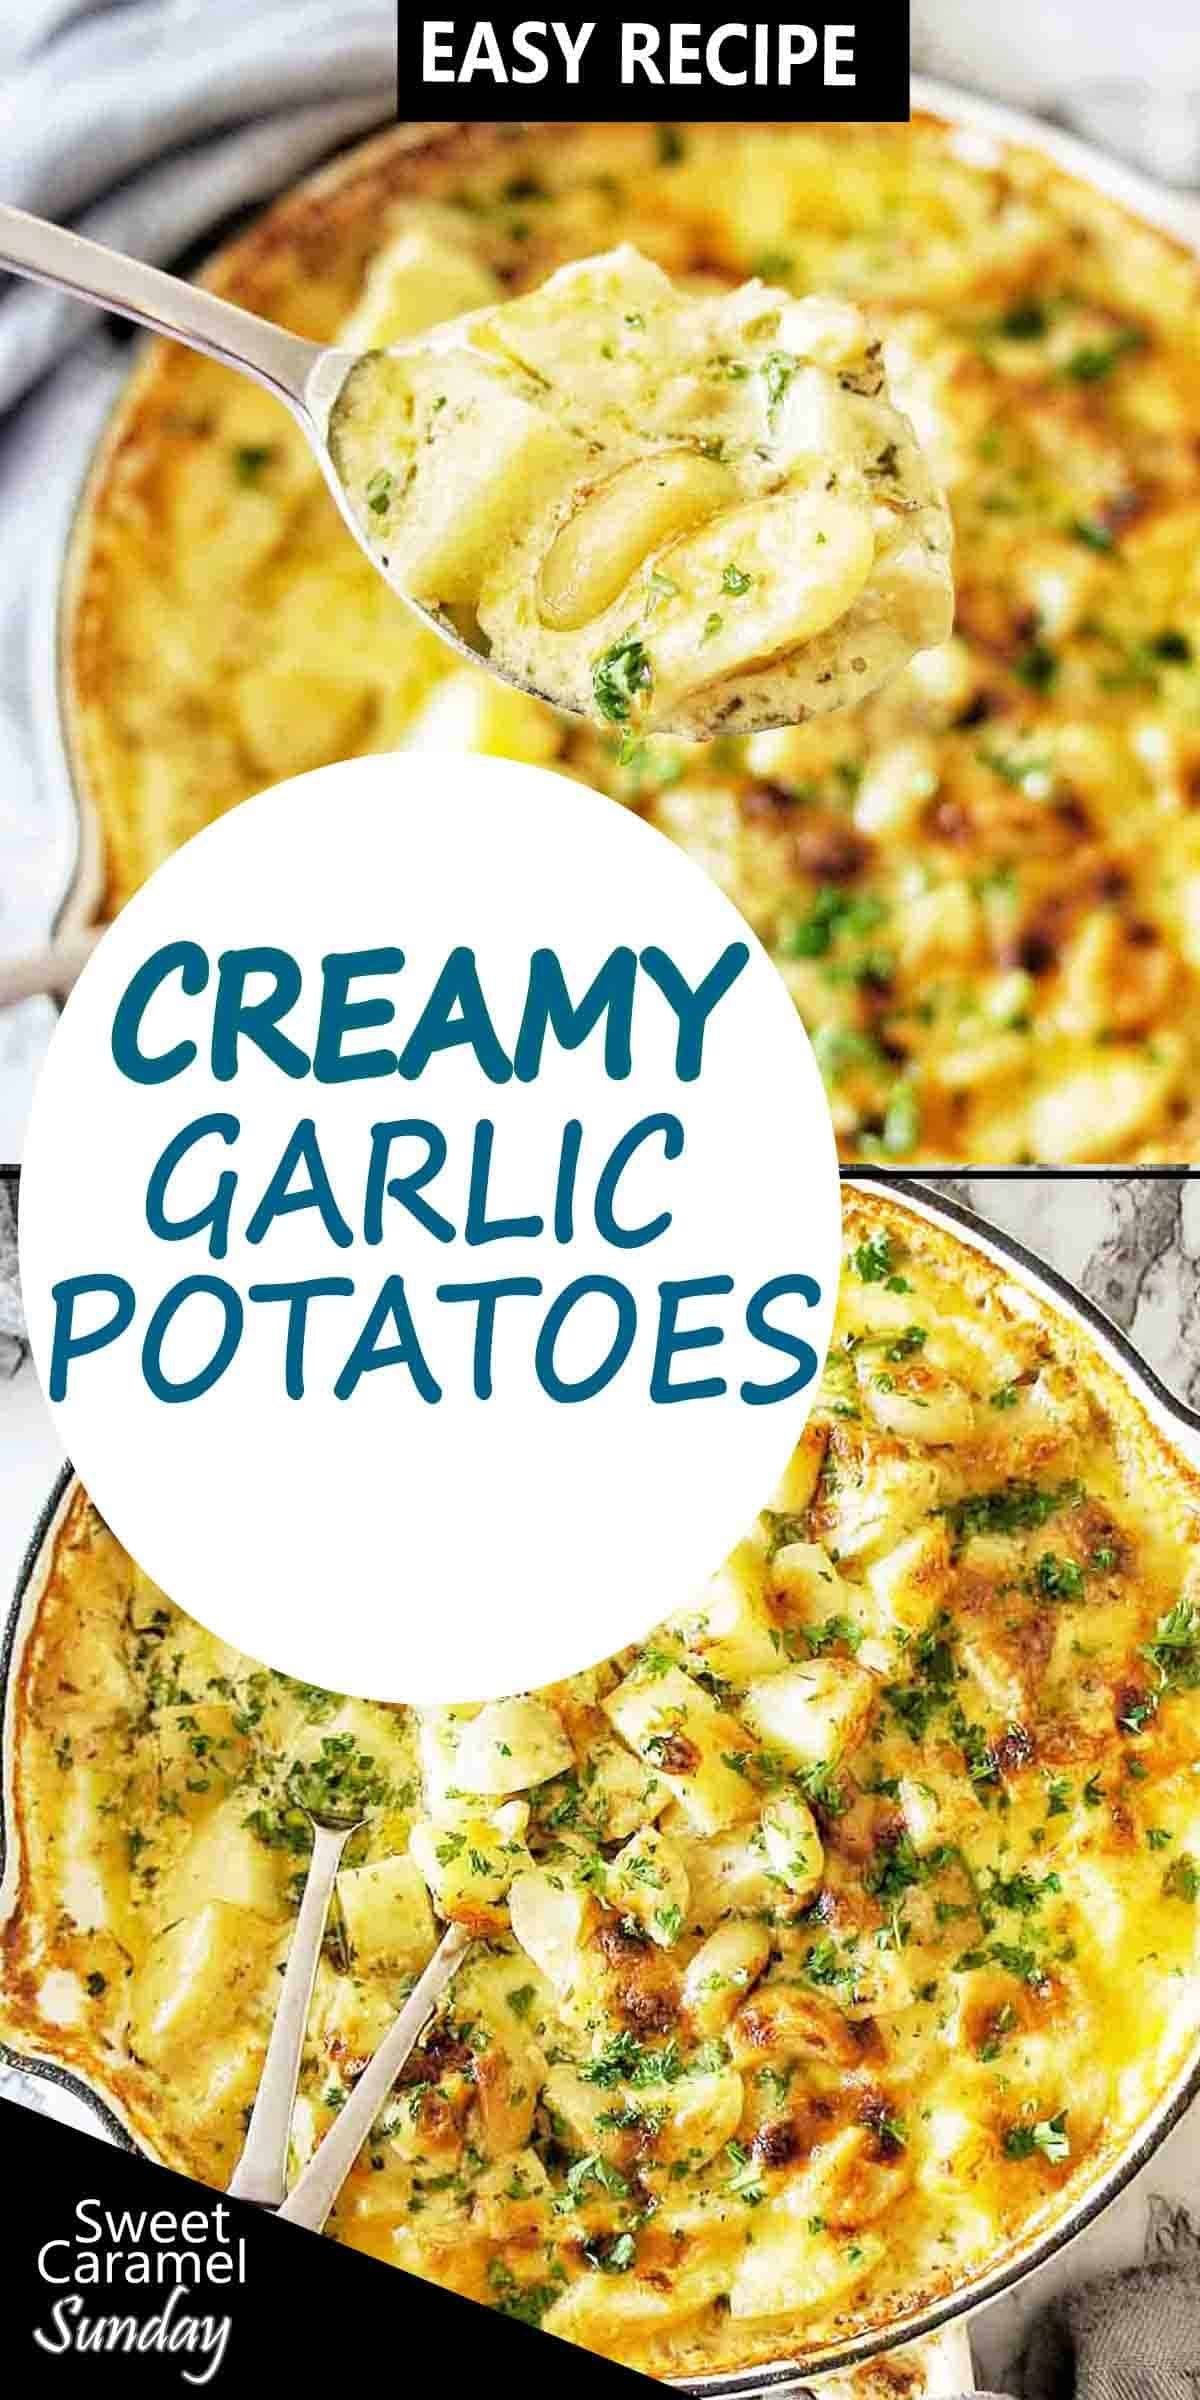 Creamy Garlic Potatoes with text overlay